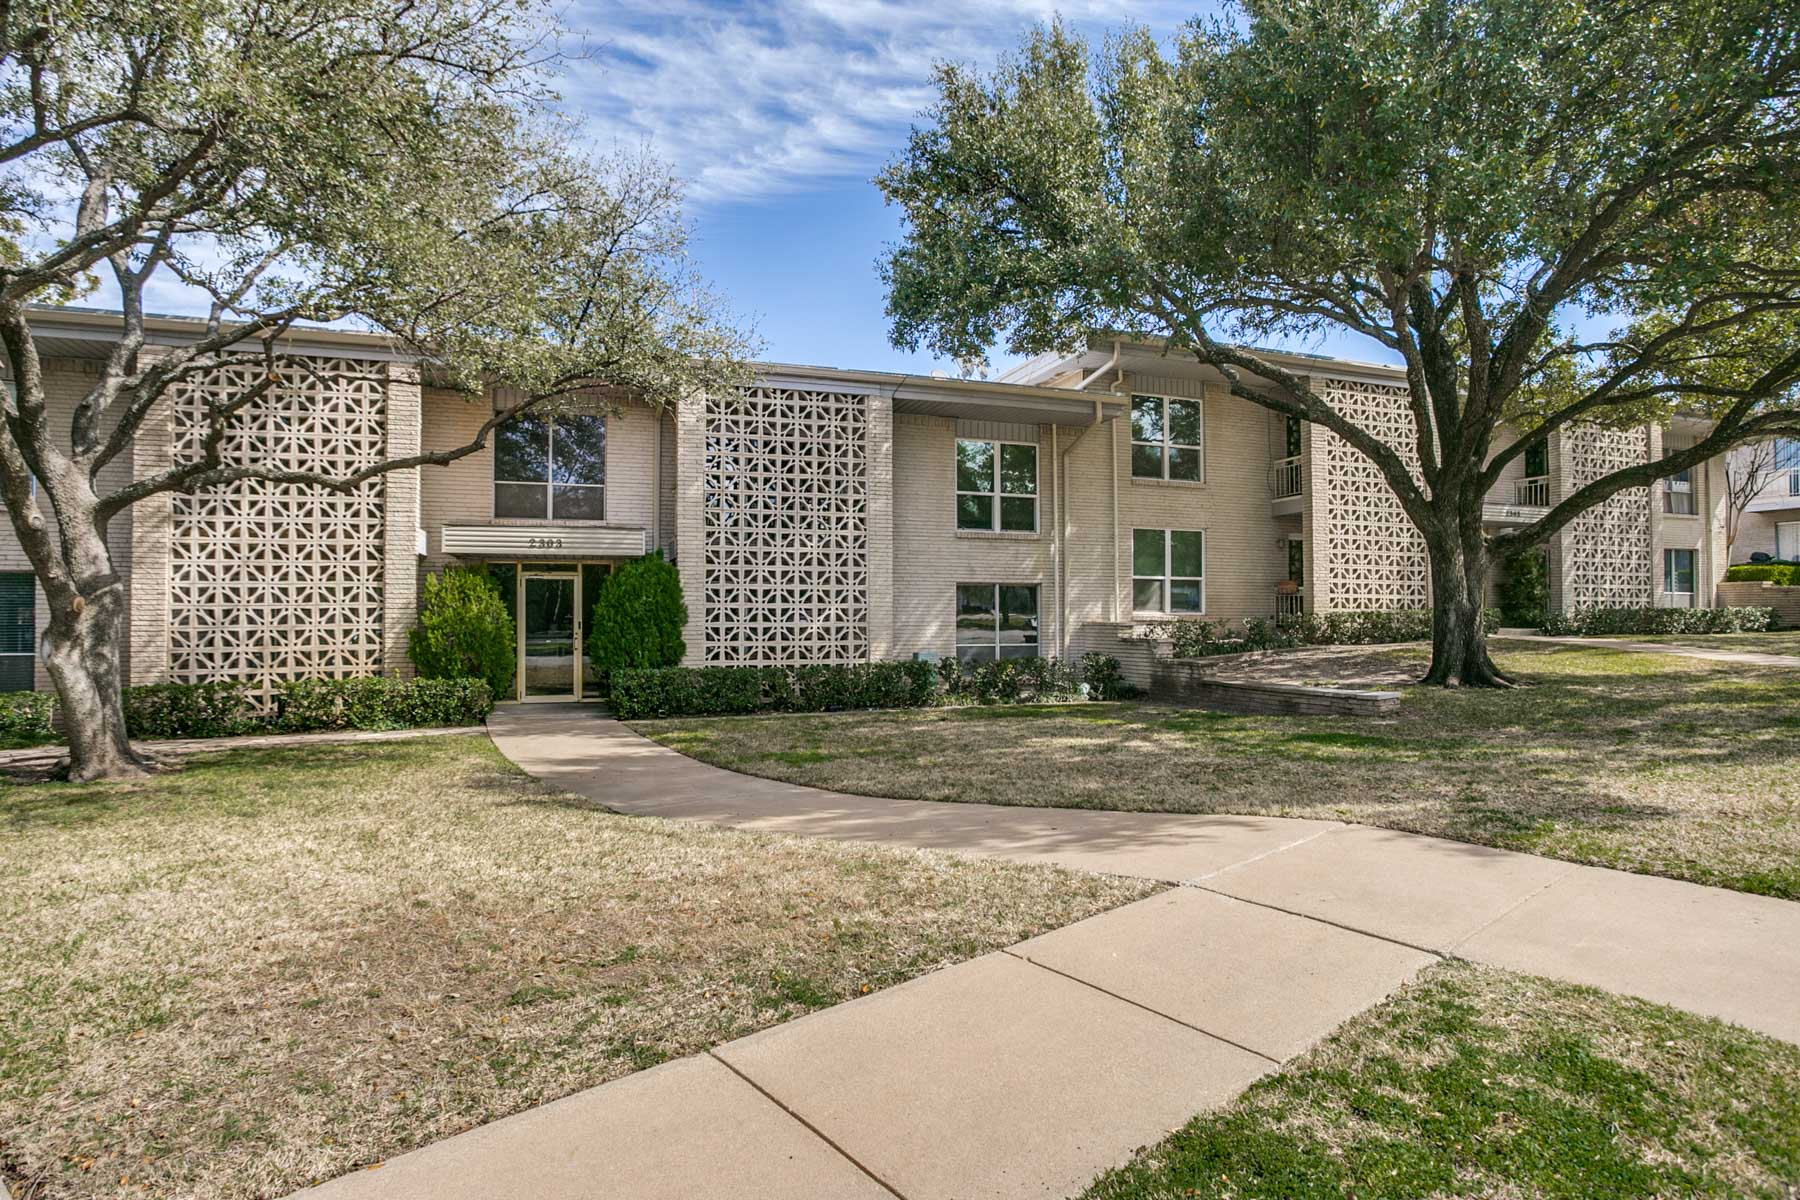 Villa per Vendita alle ore 2303 Ridgmar Plaza 29, Fort Worth Fort Worth, Texas, 76116 Stati Uniti